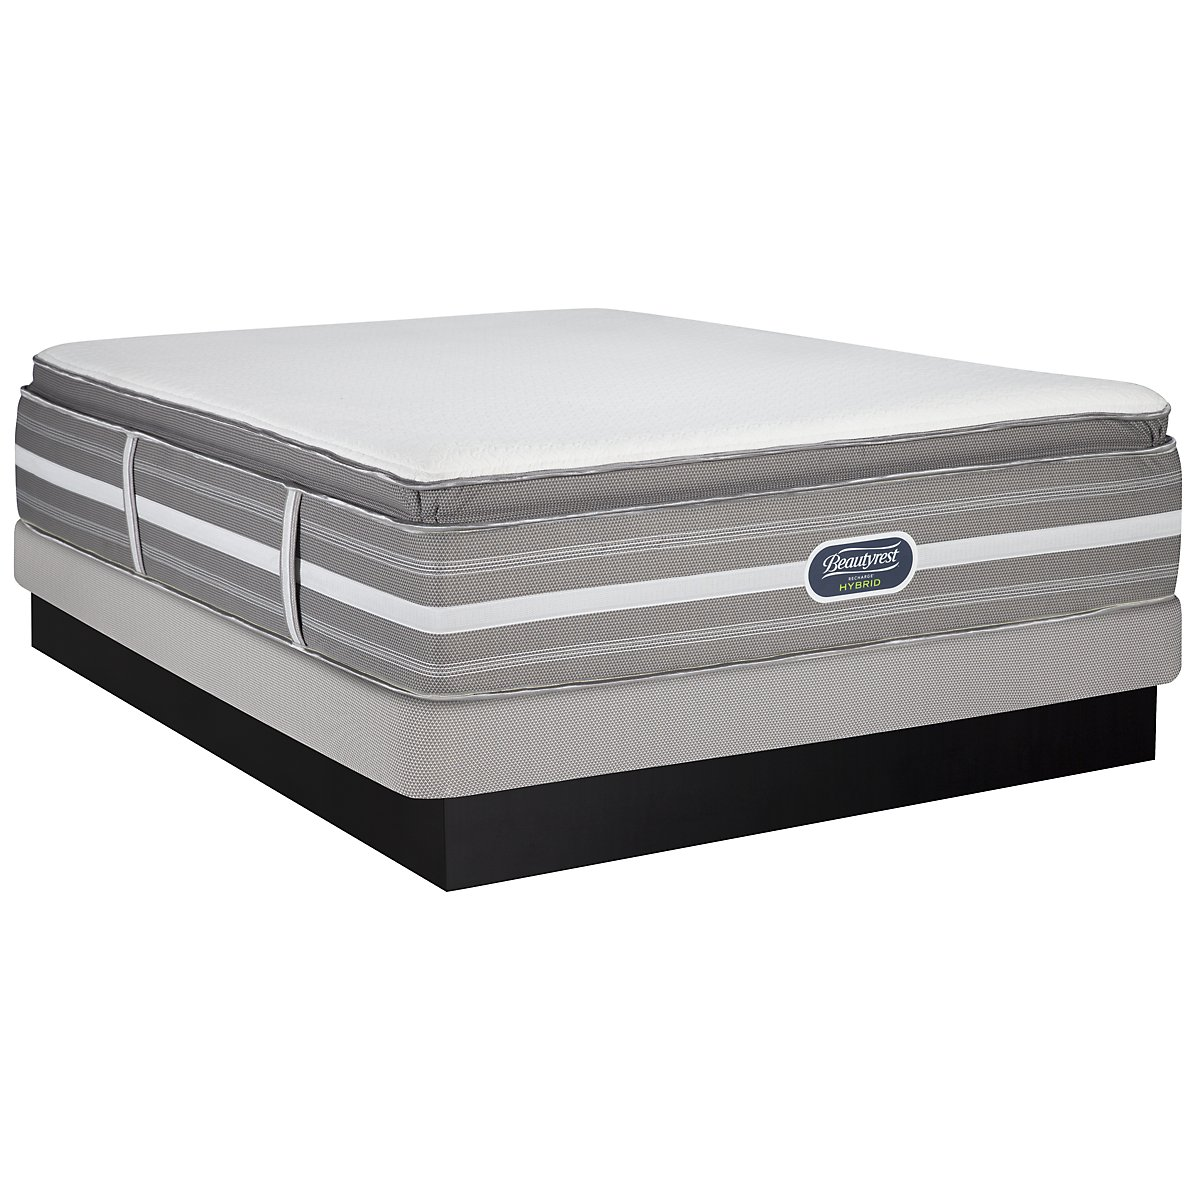 Beautyrest Ryleigh Ultimate Luxury Plush Hybrid Low-Profile Mattress Set